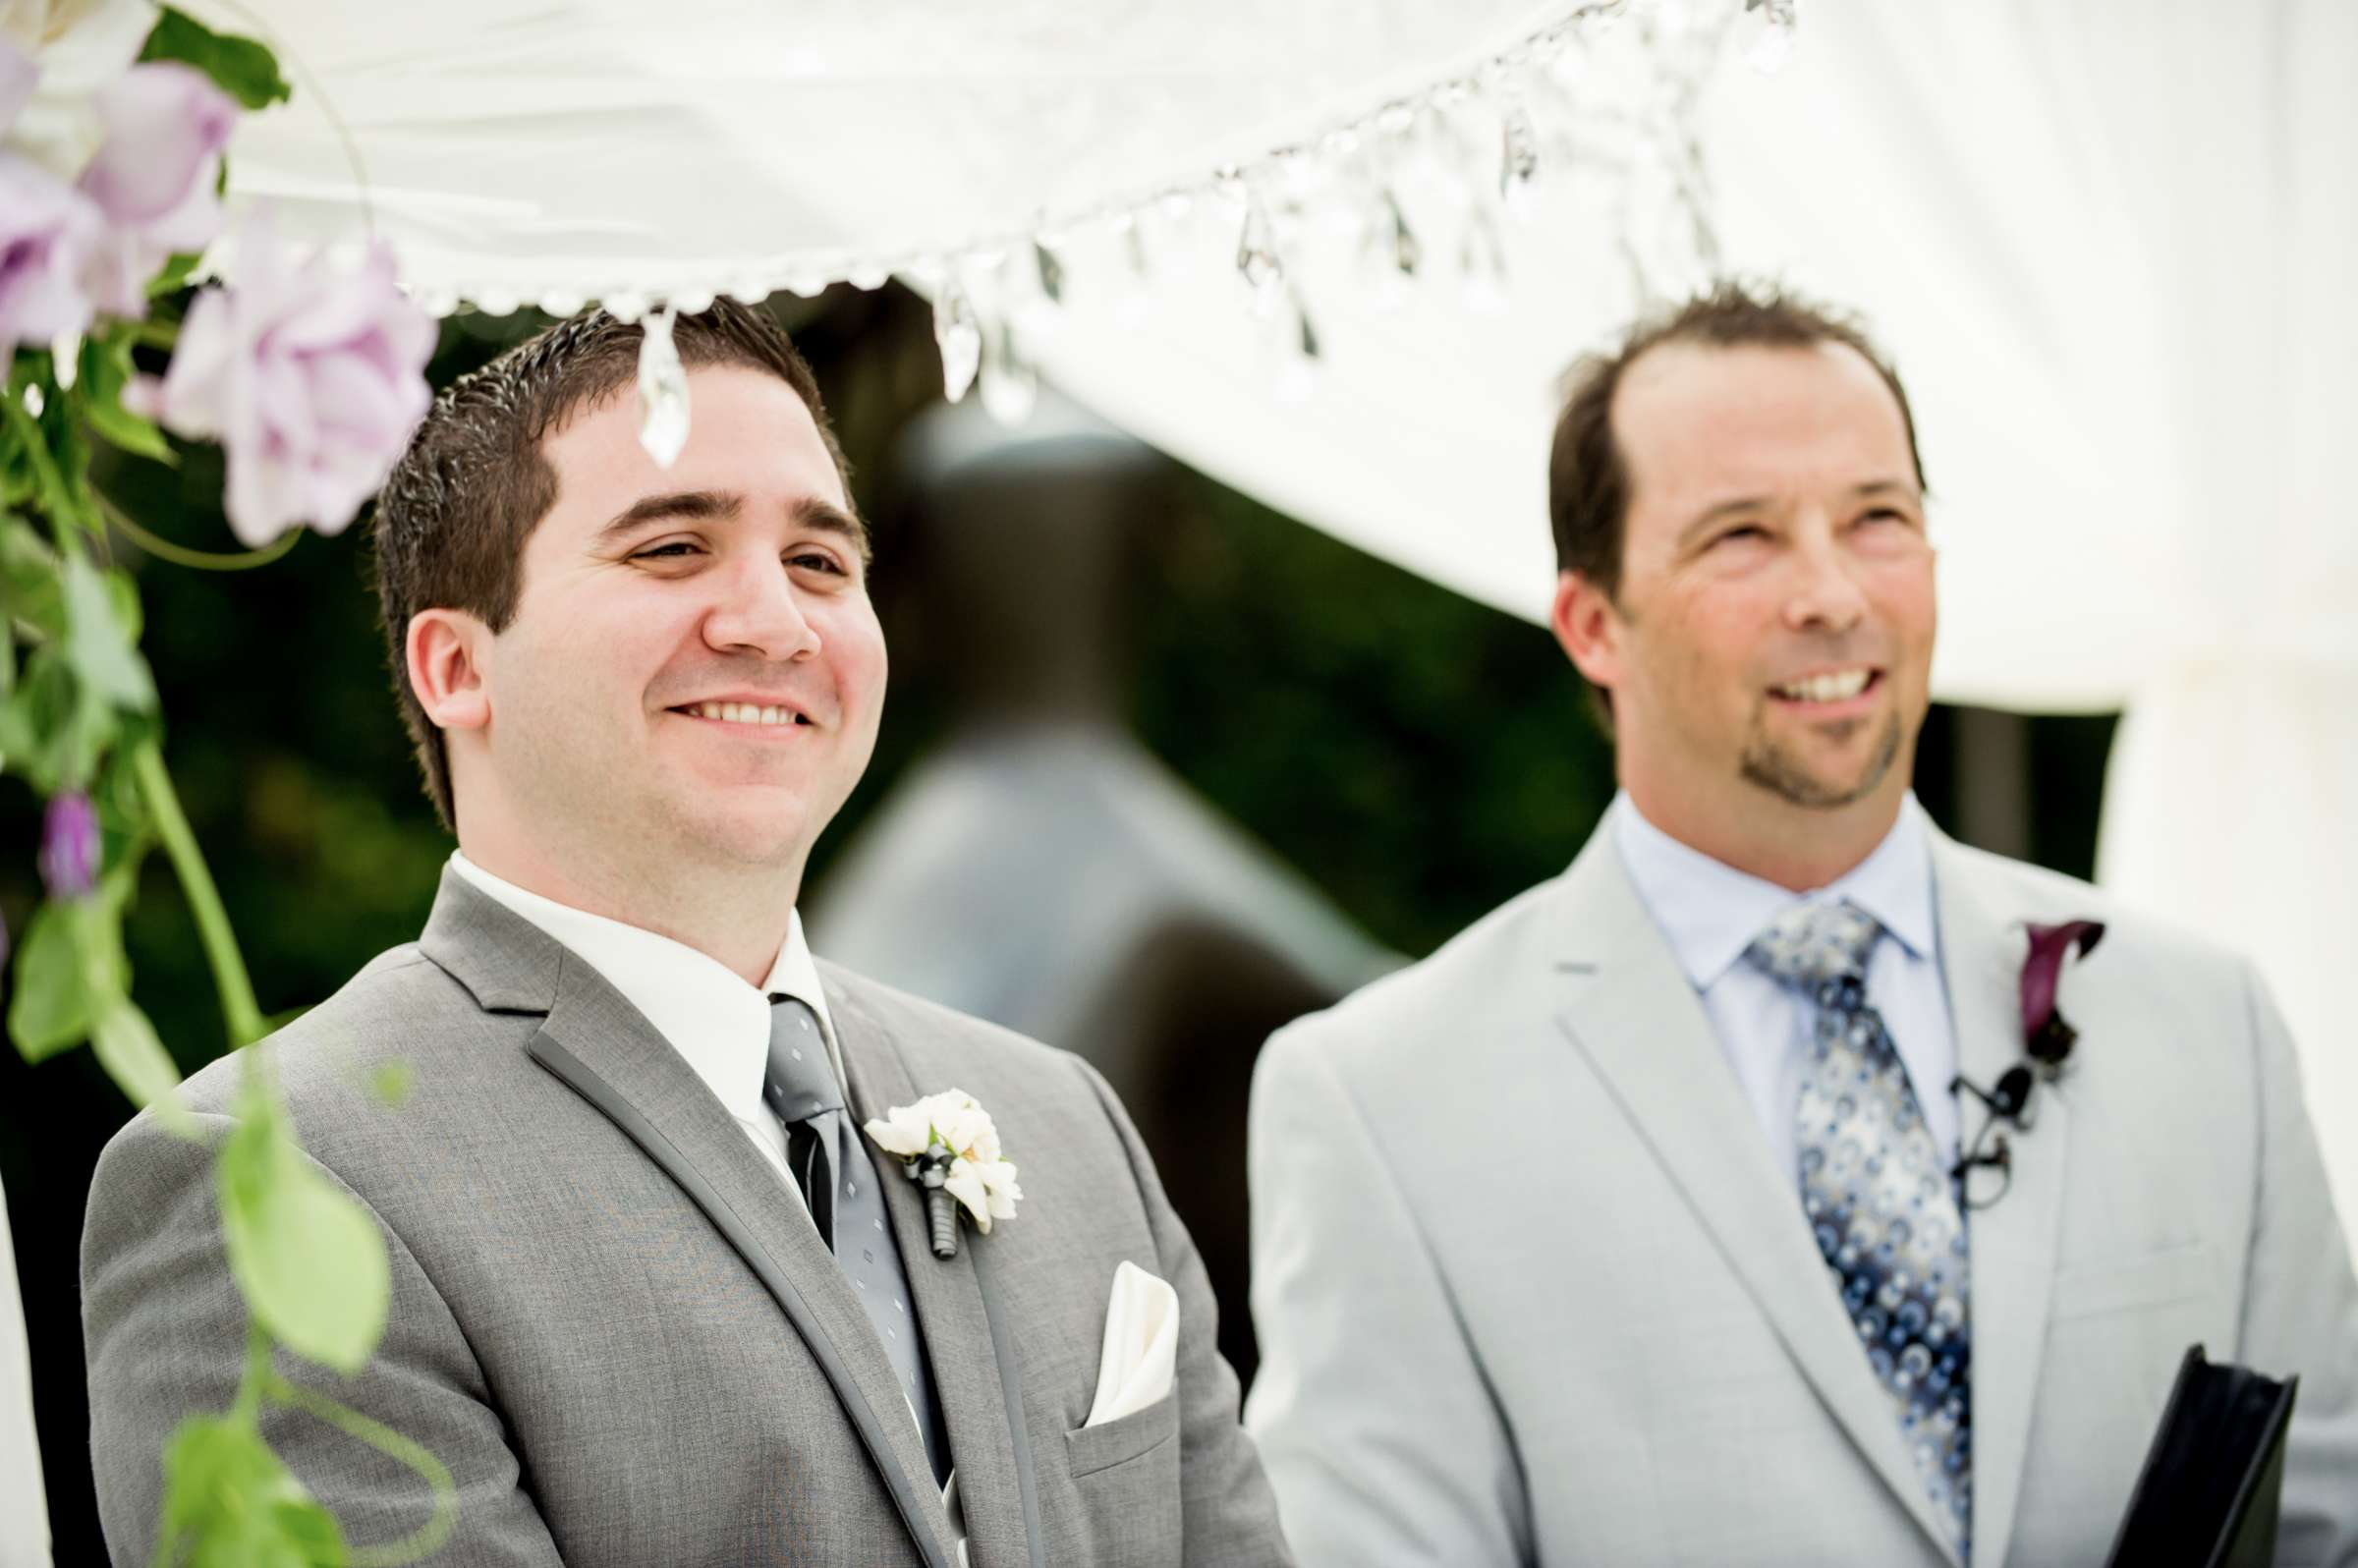 The Prado Wedding coordinated by Victoria Weddings & Events, Melissa and Andrew Wedding Photo #65 by True Photography